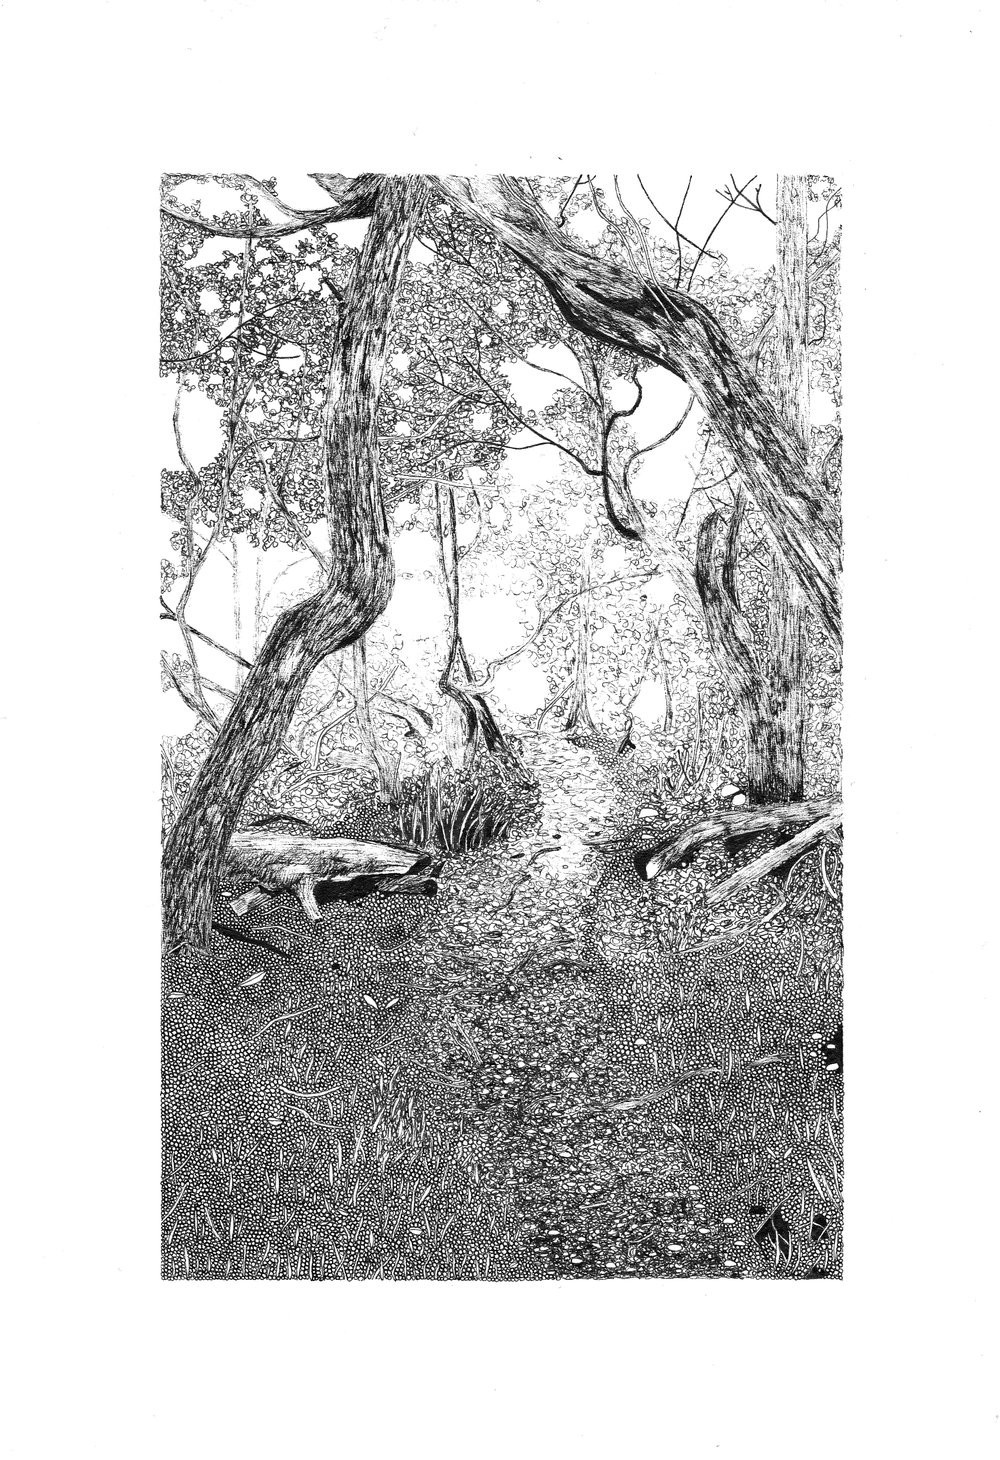 Twisted Trees in Tierra del Fuego, 21cm x 14.9cm, pen on paper